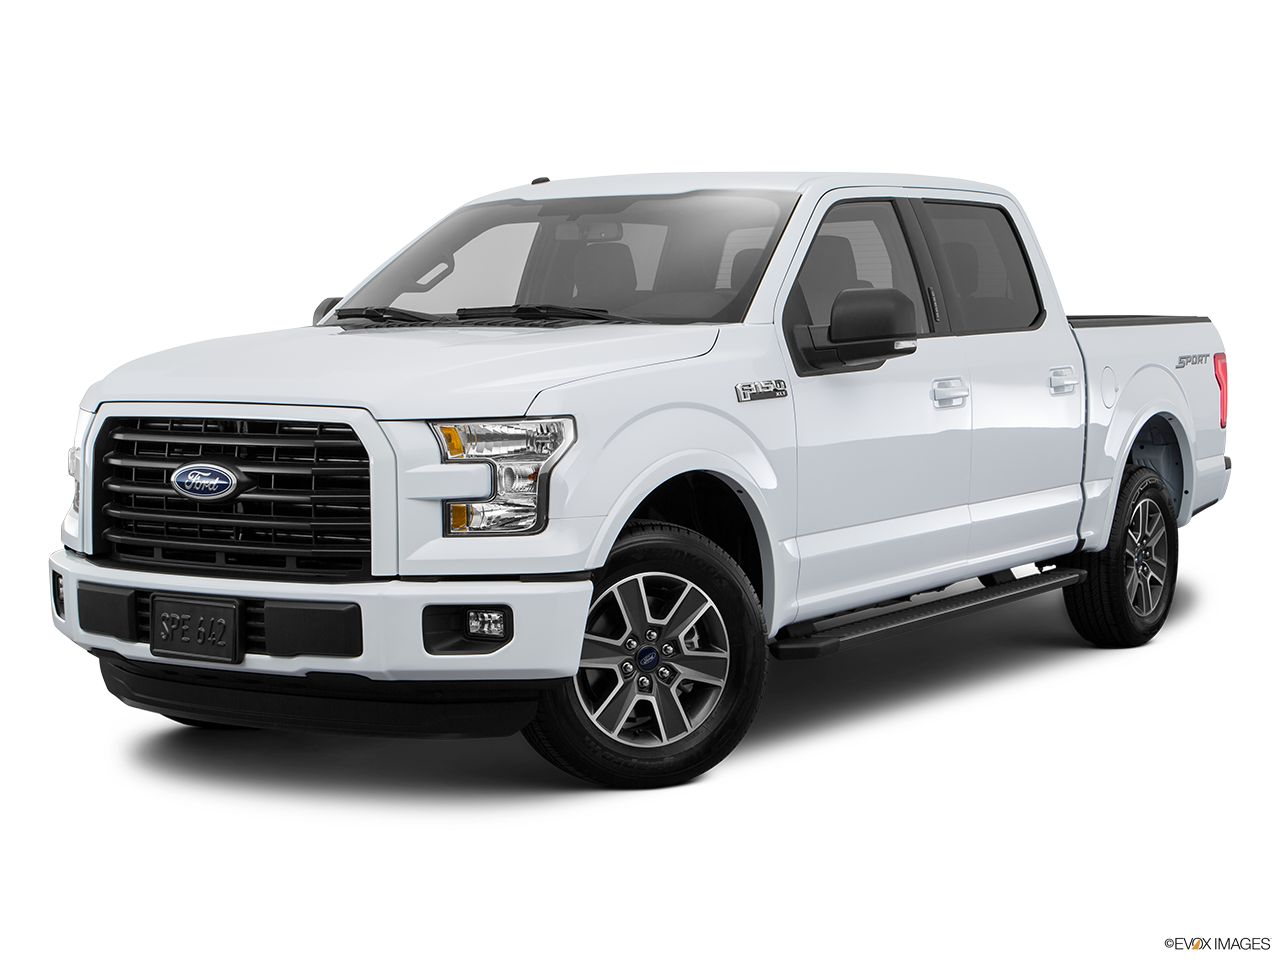 Test Drive A 2016 Ford F-150 at Sunland Ford in San Bernardino County